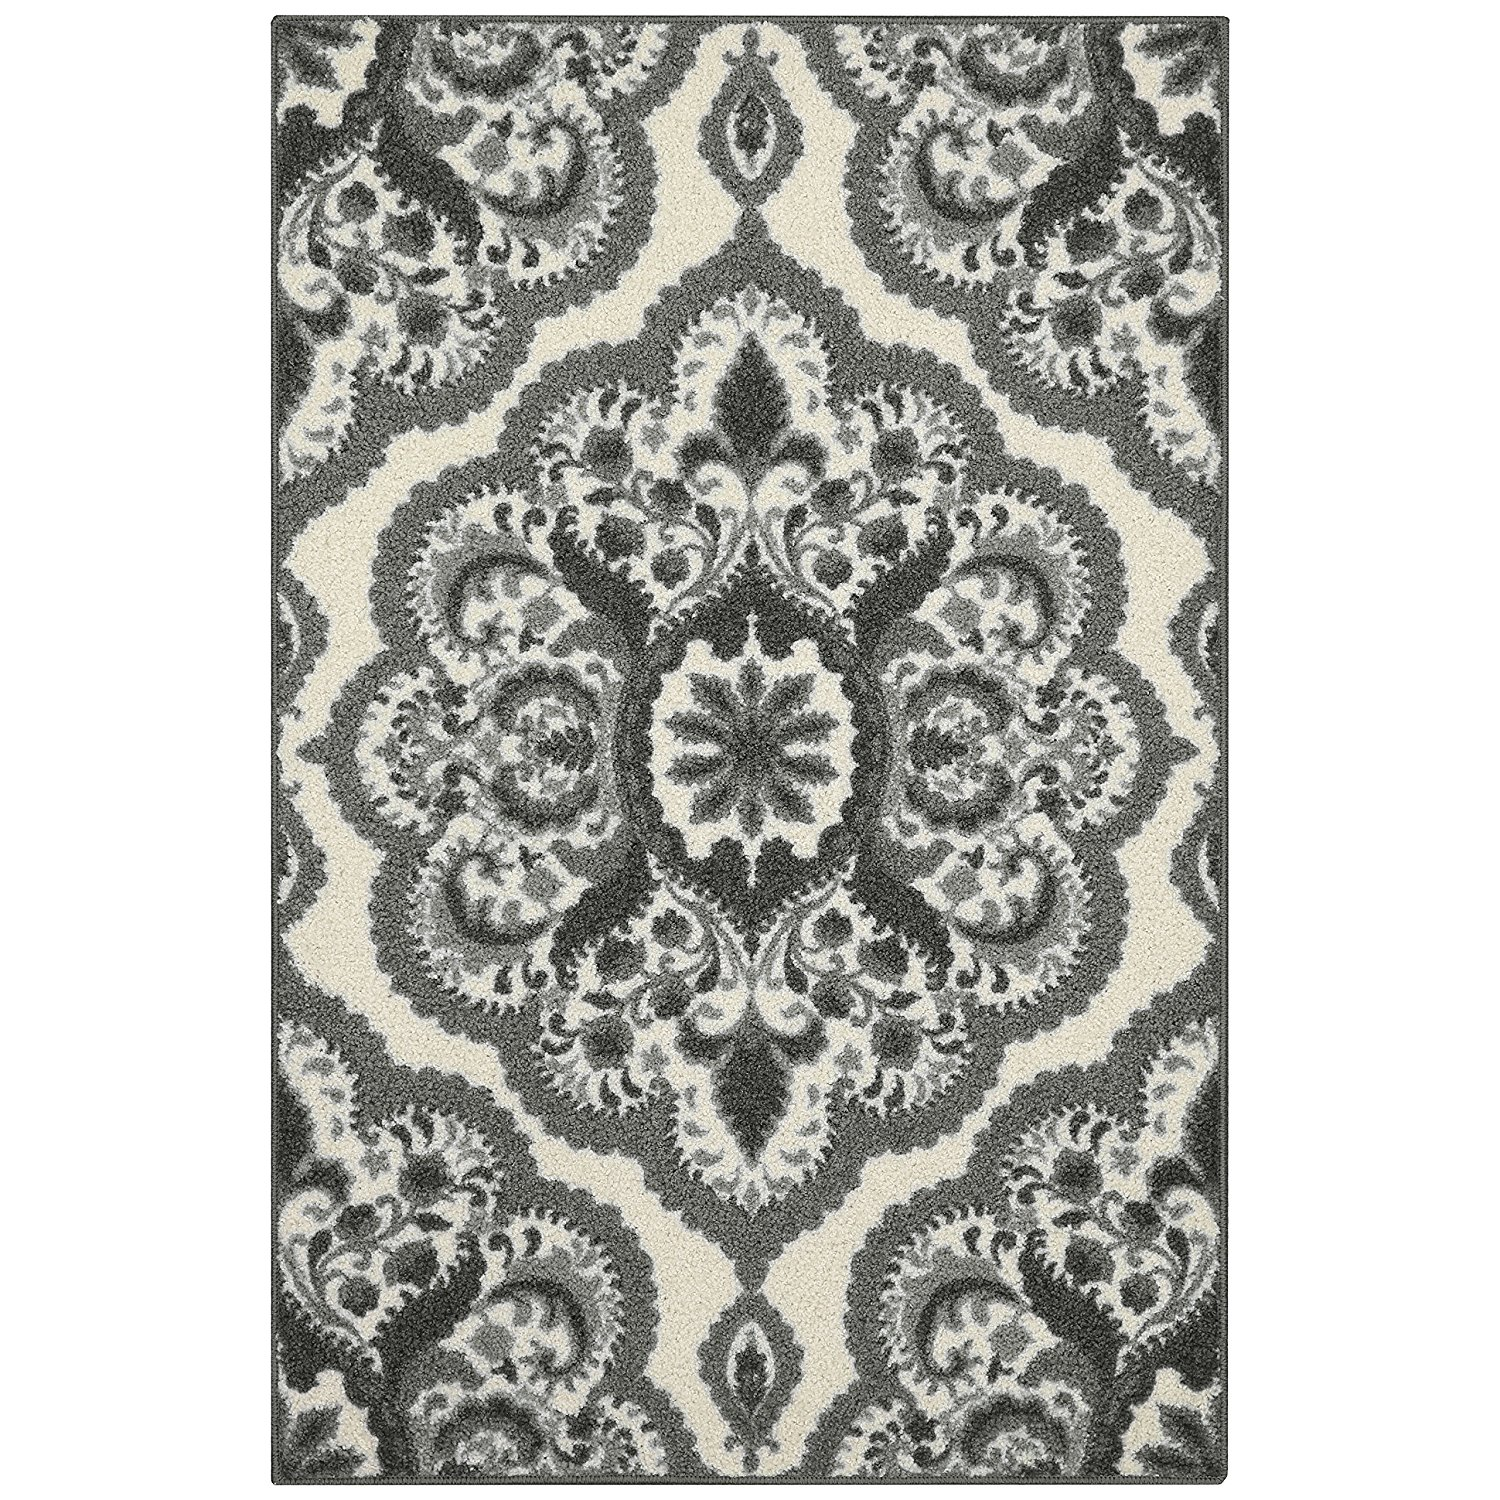 Buy Maples Rugs Kitchen Rug - Vivian 2.5 x 4 Non Skid Small ...